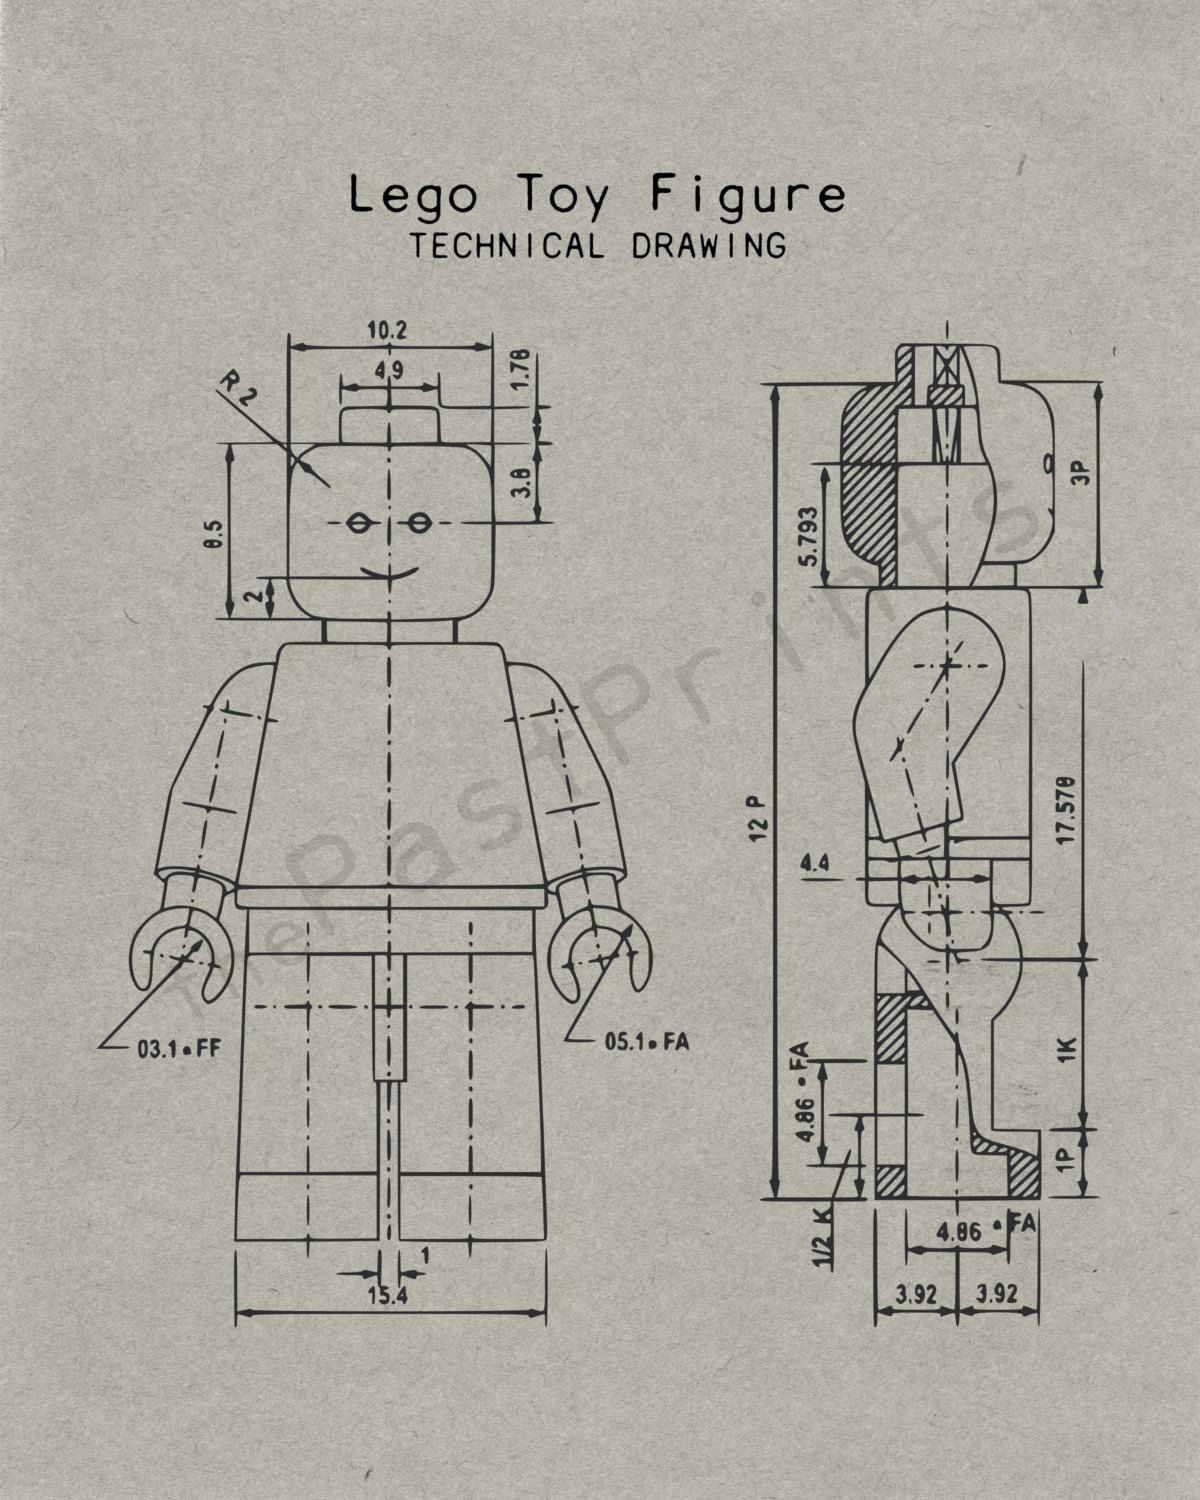 Lego Printable  Lego Figure Techincal Drawing  Lego Art  Lego Print  Lego Poster ...